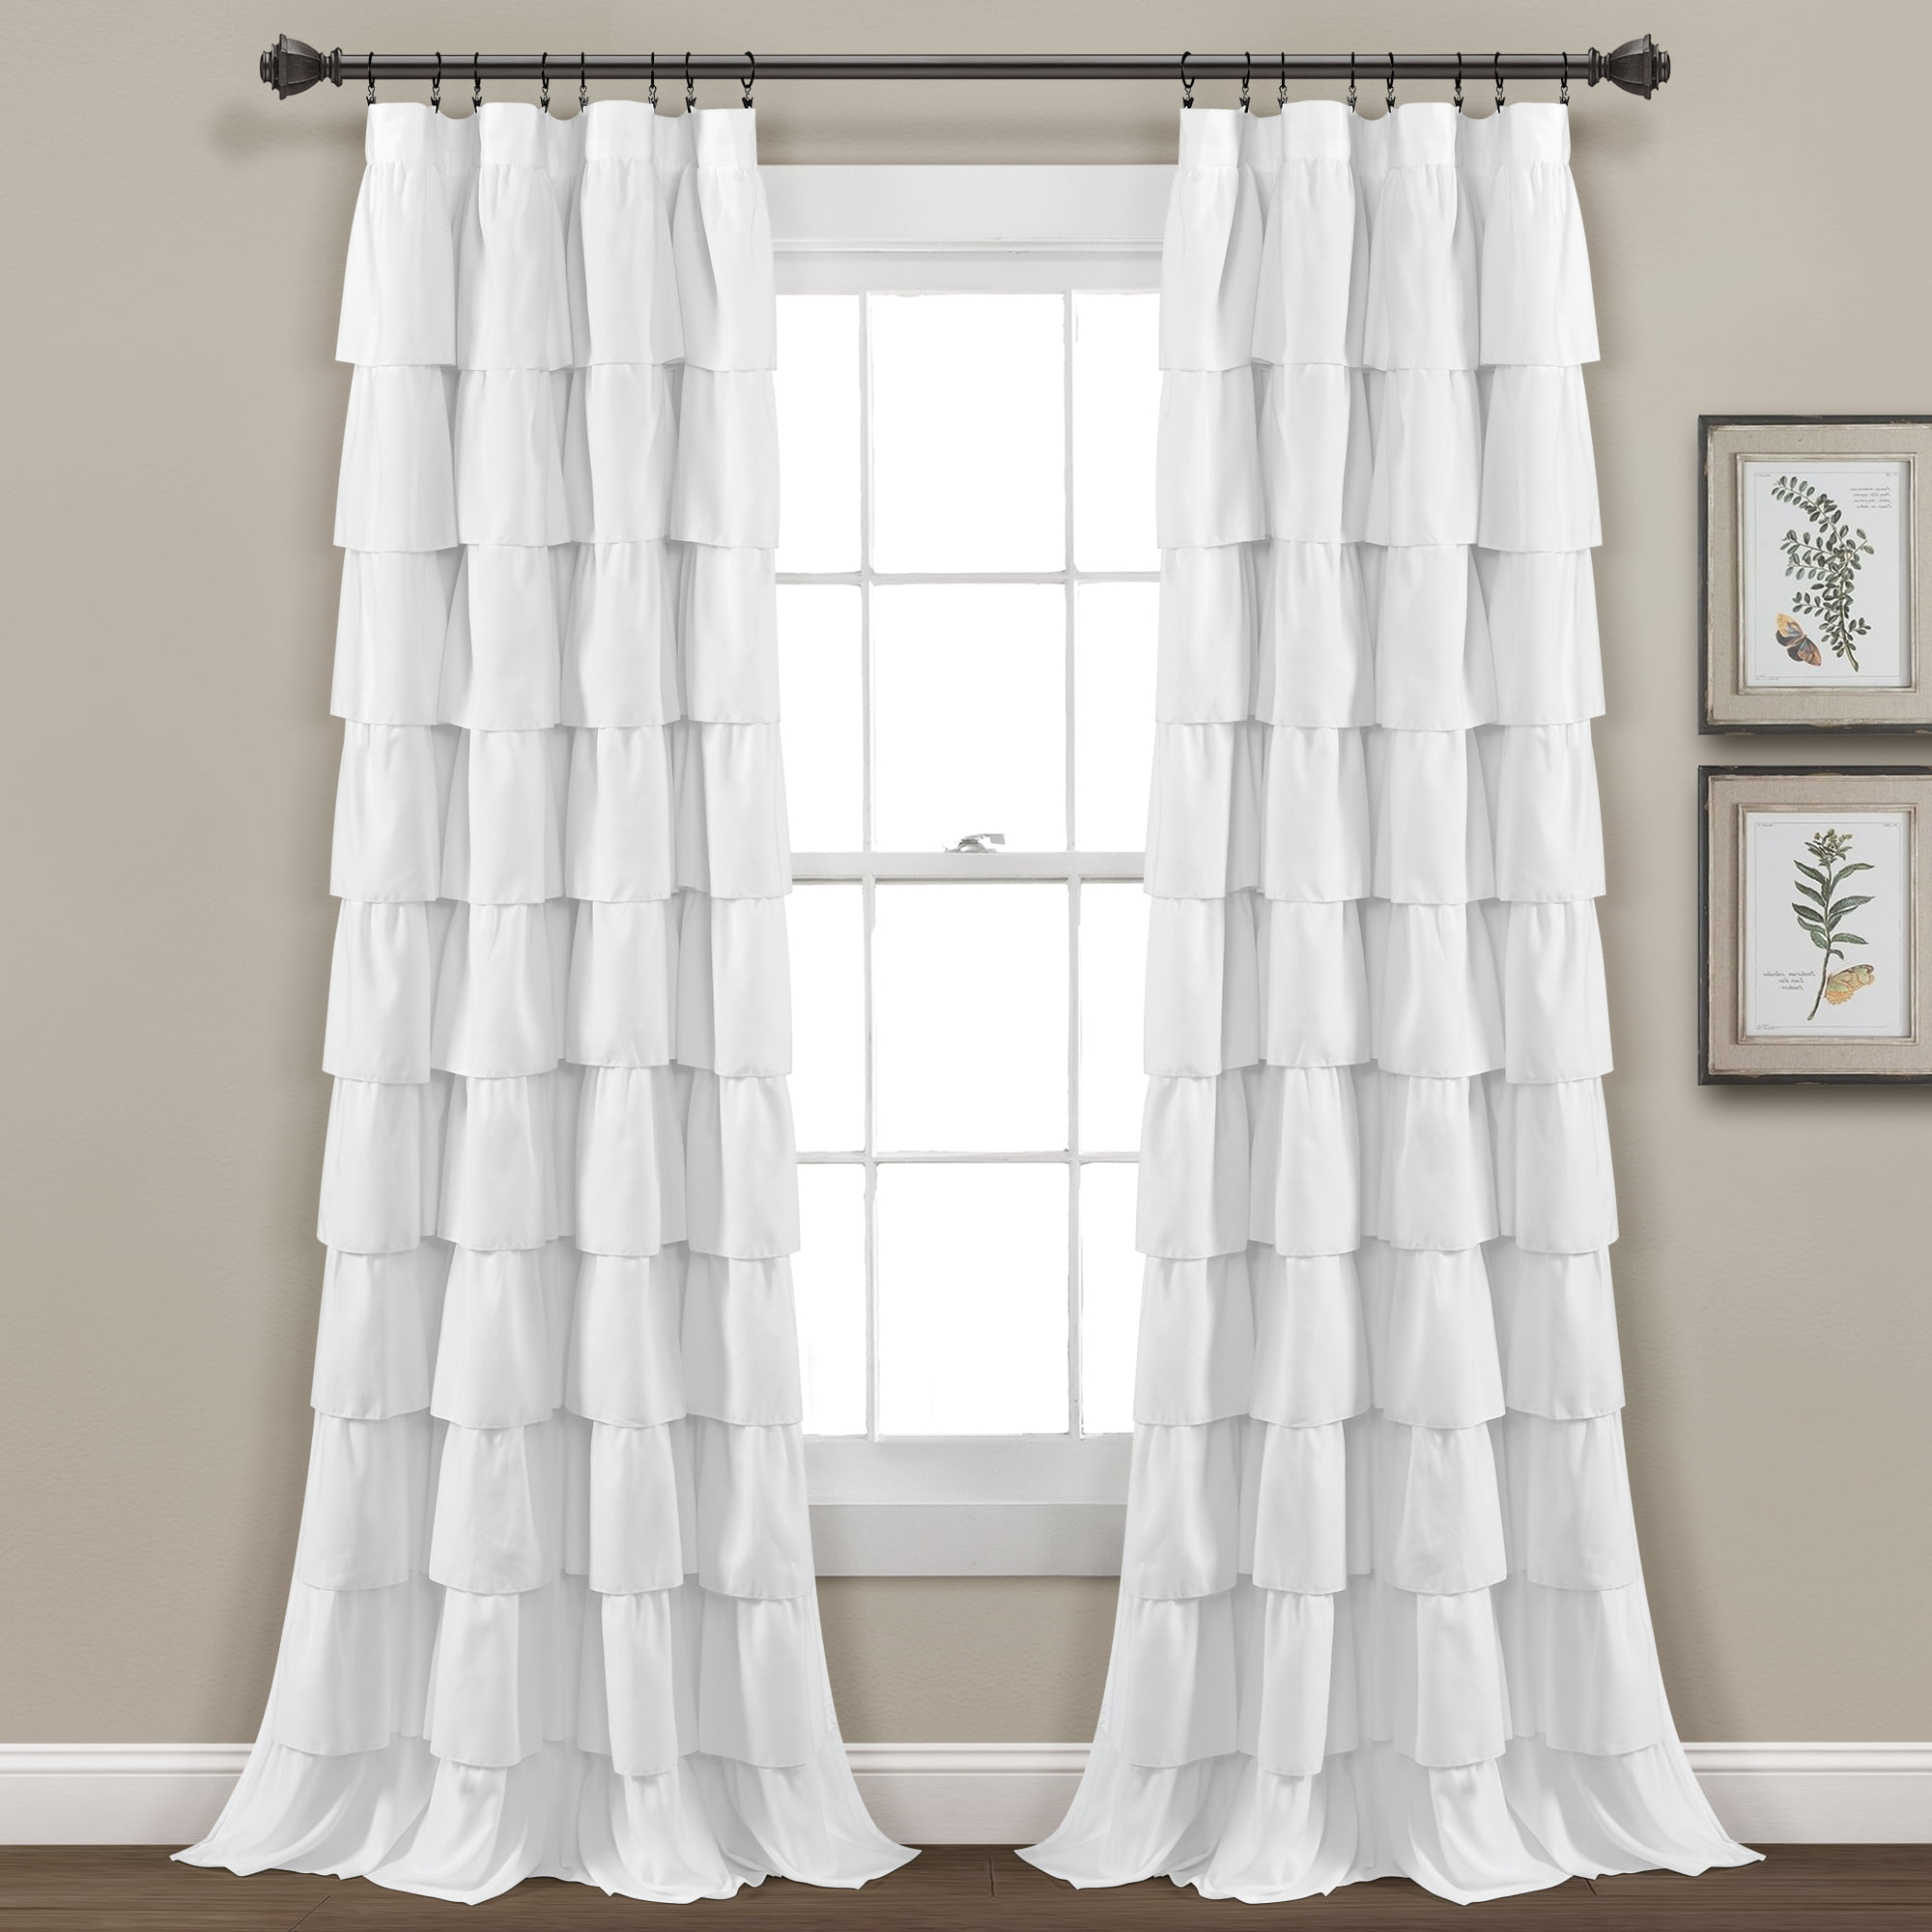 Ruffle Window Curtain White Single 50x84 - Walmart.com - Walmart.com